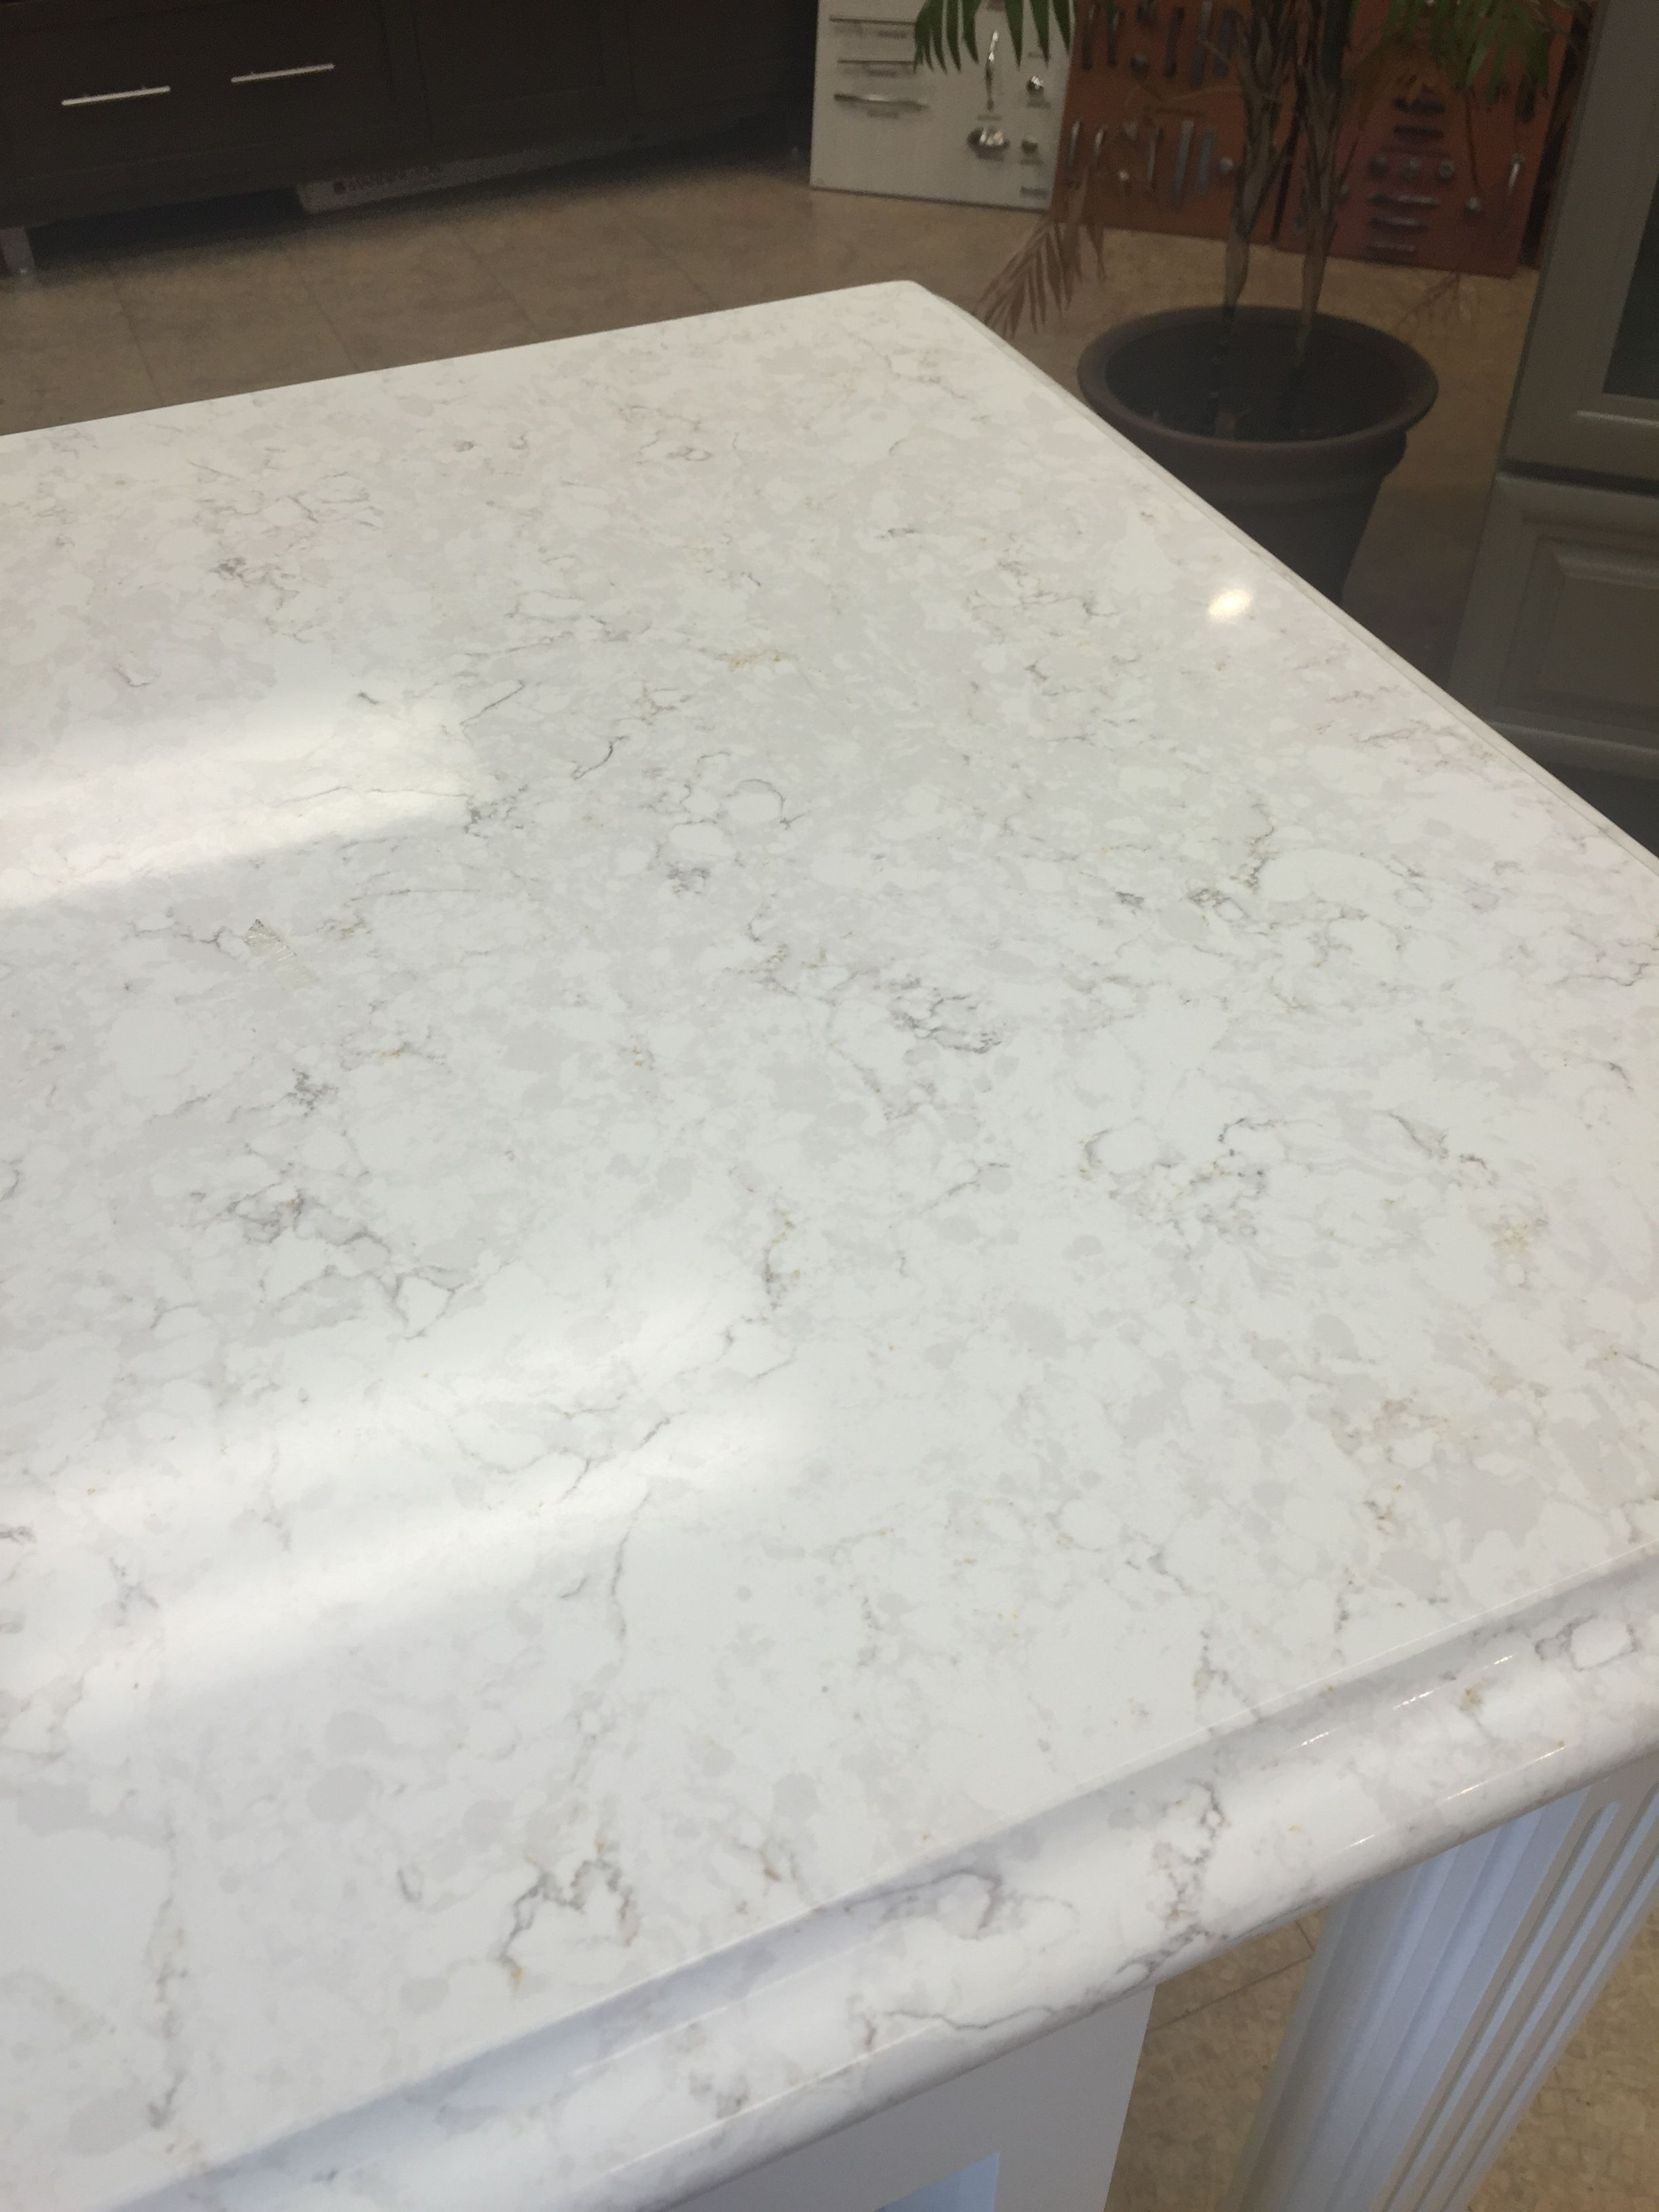 kitchen stone polishing countertops options center cafeazul afton type quartz formica material guide sioux the choosing your countertop falls best